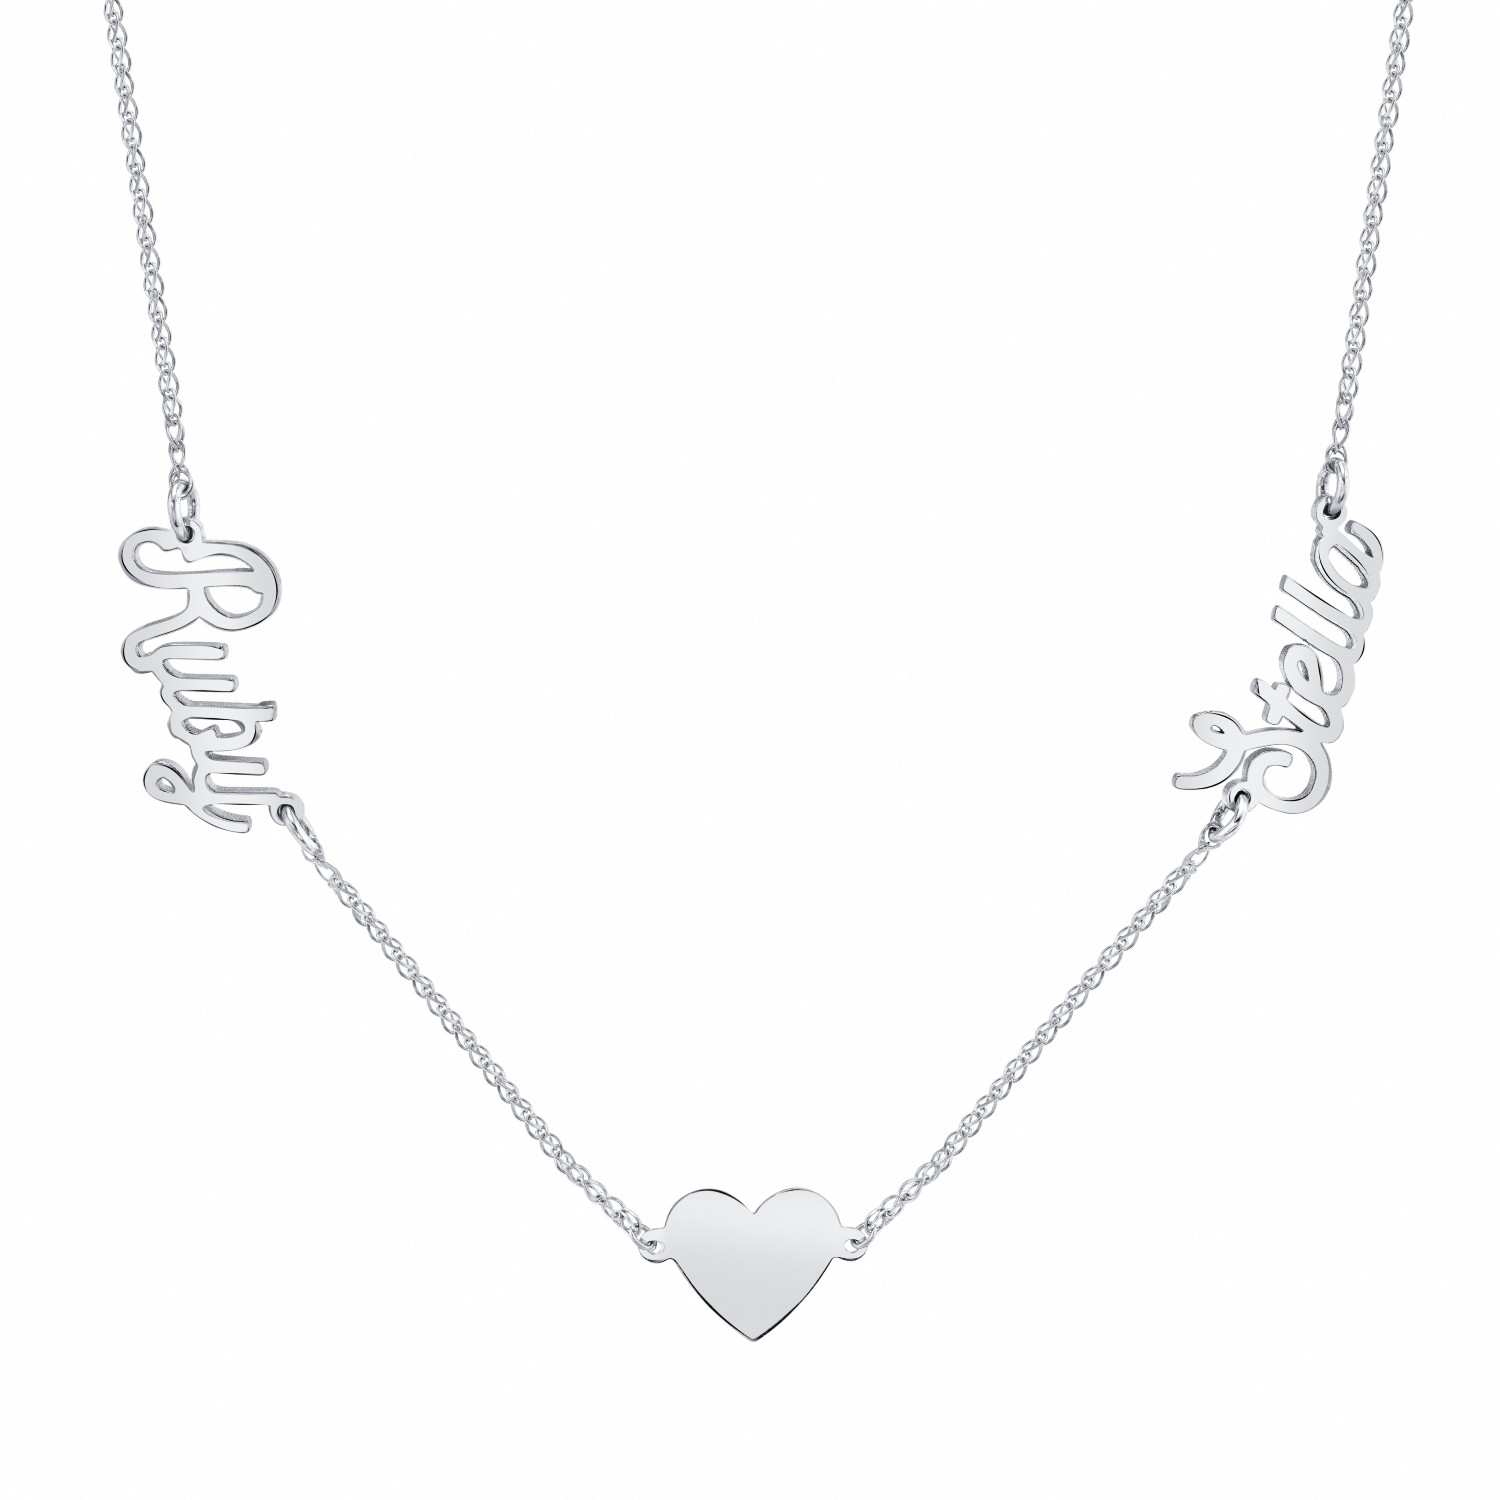 14k White Gold Personalized Nameplate Floating Heart Necklace